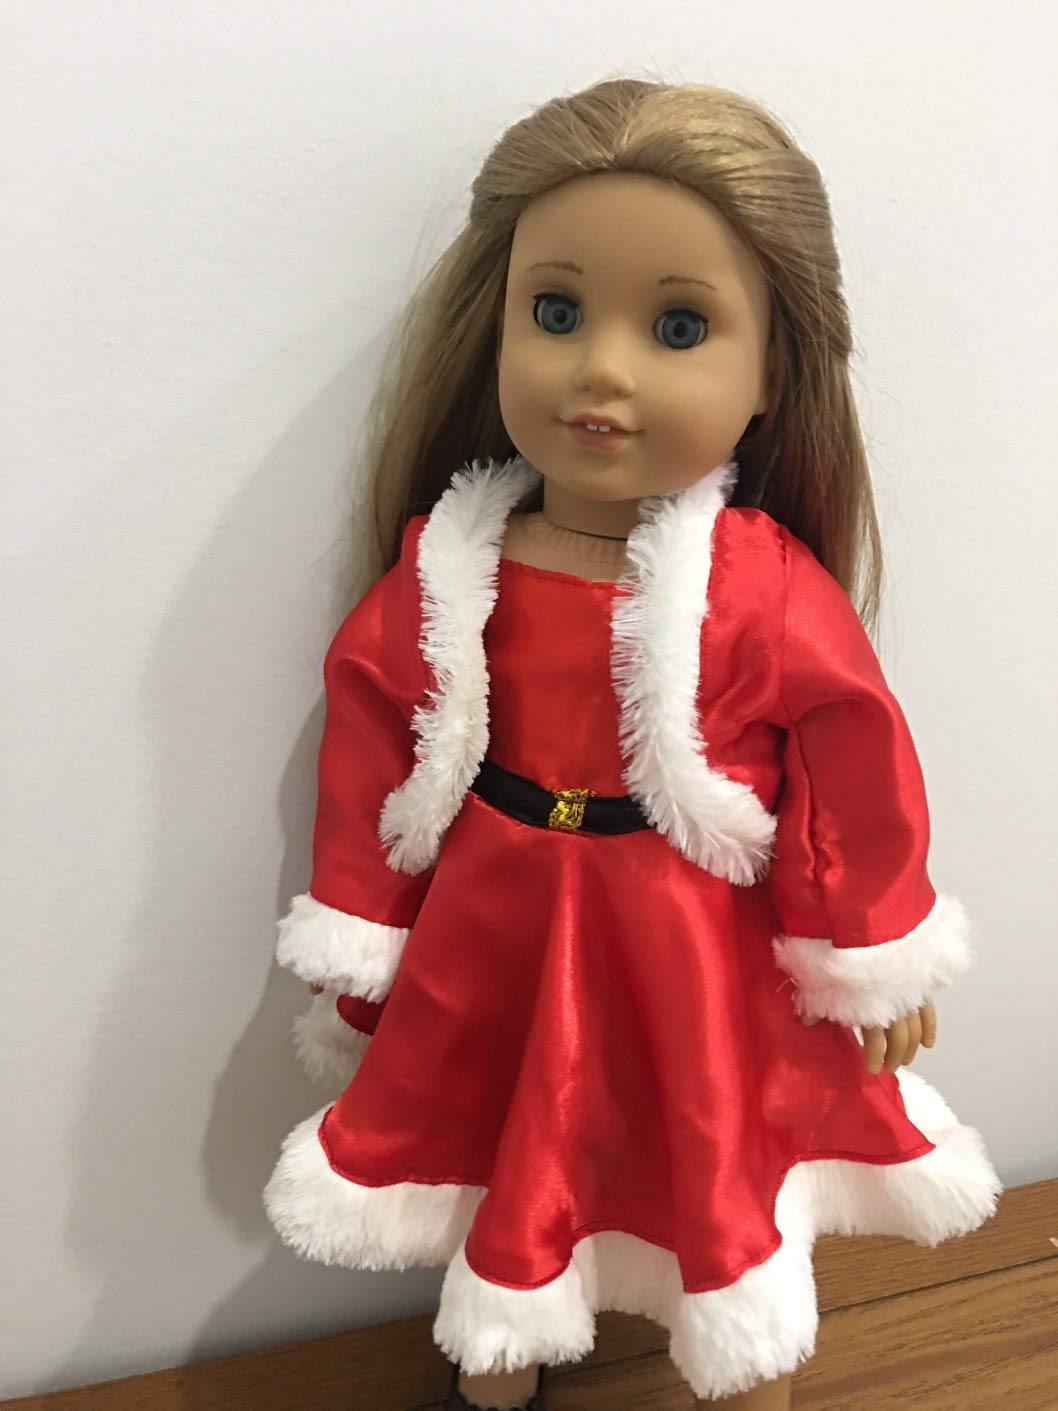 Christmas Party Santa Claus Dress Red White Fits 18' American girl Doll Clothes , Our Generation or My Life As doll